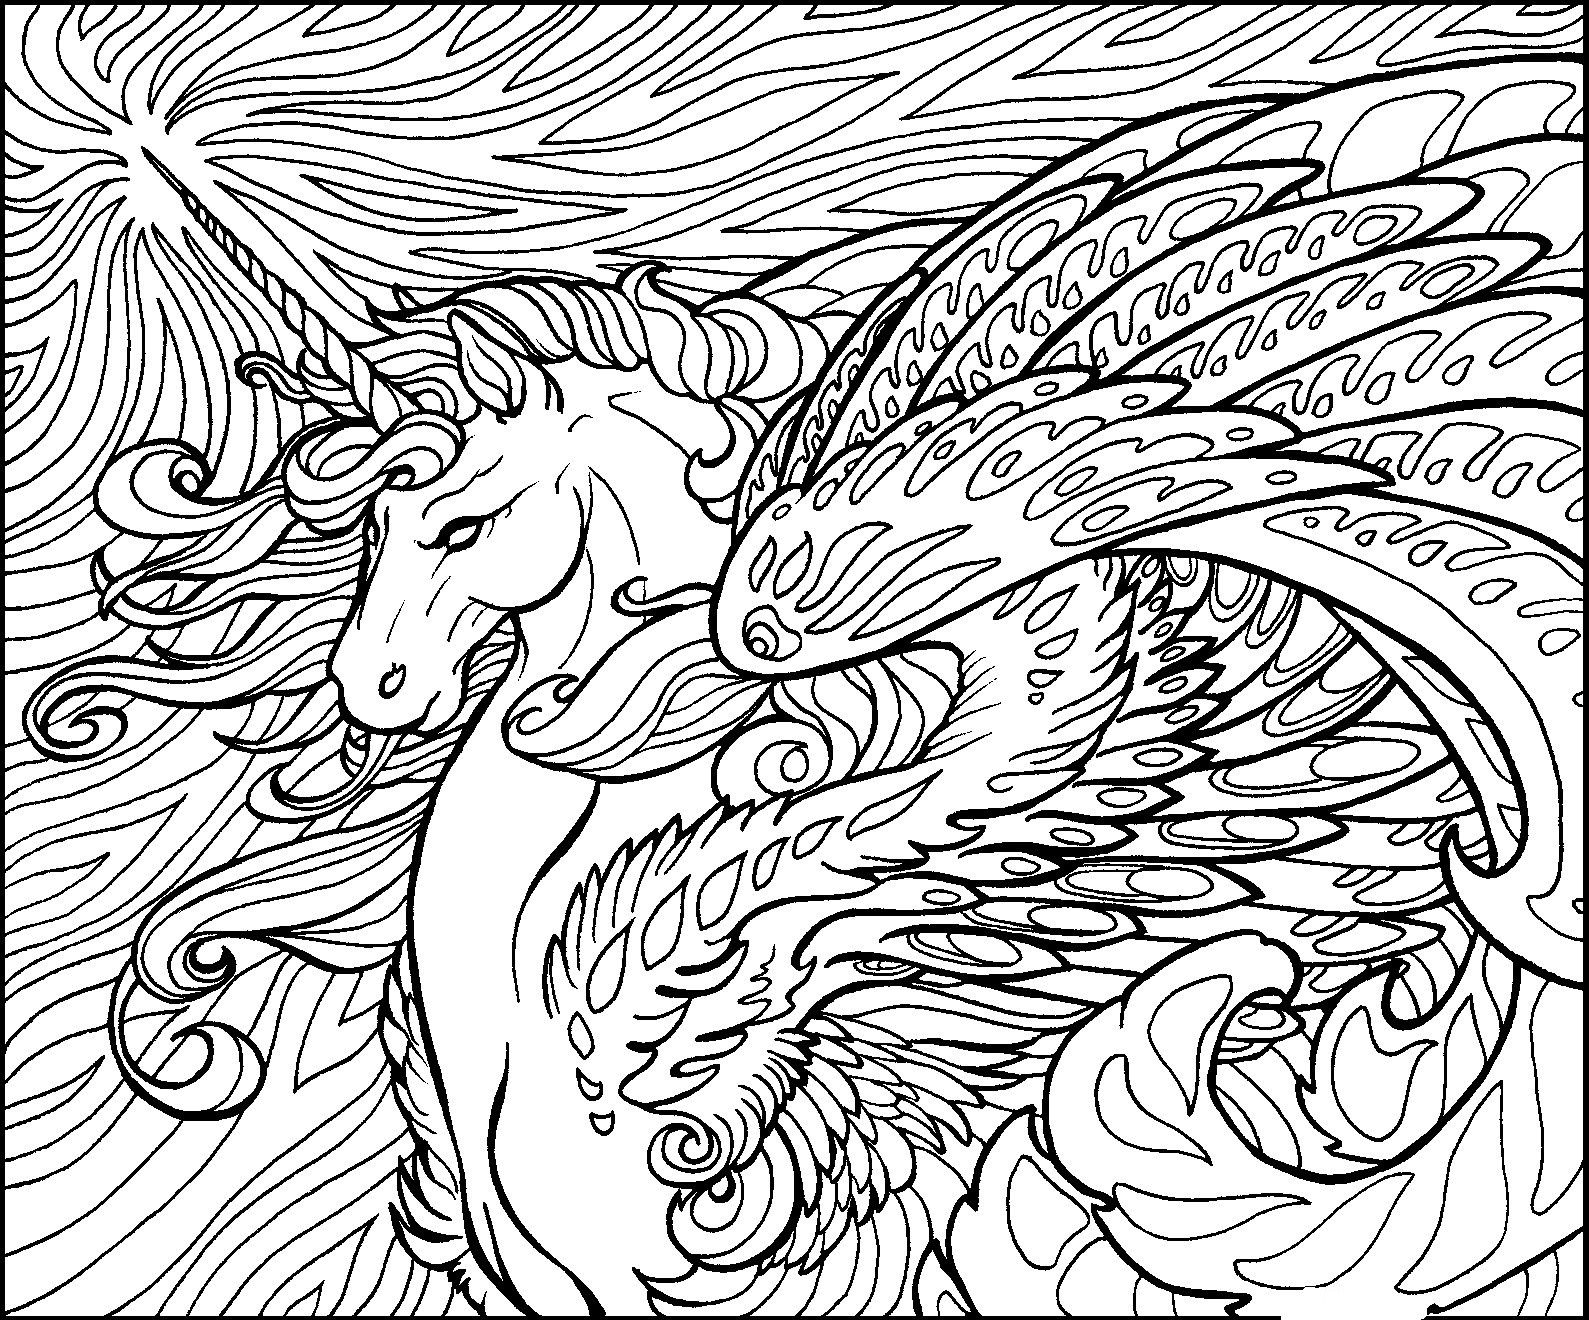 Detailed For Adults - Coloring Pages for Kids and for Adults